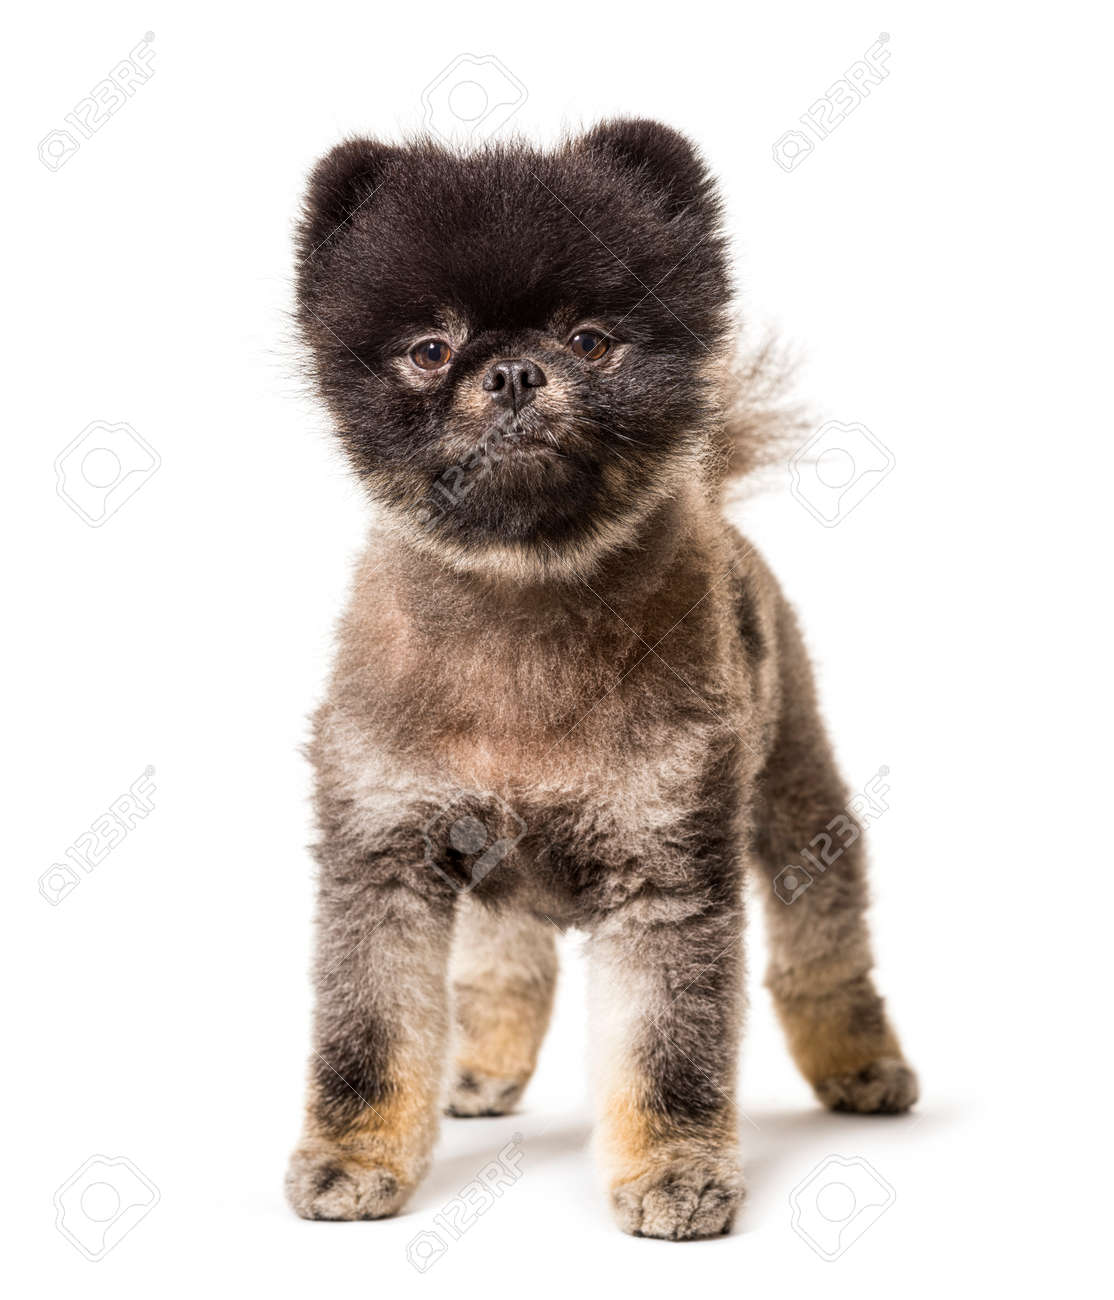 Brown and Black groomed spitz dog standing on a white background - 171049276